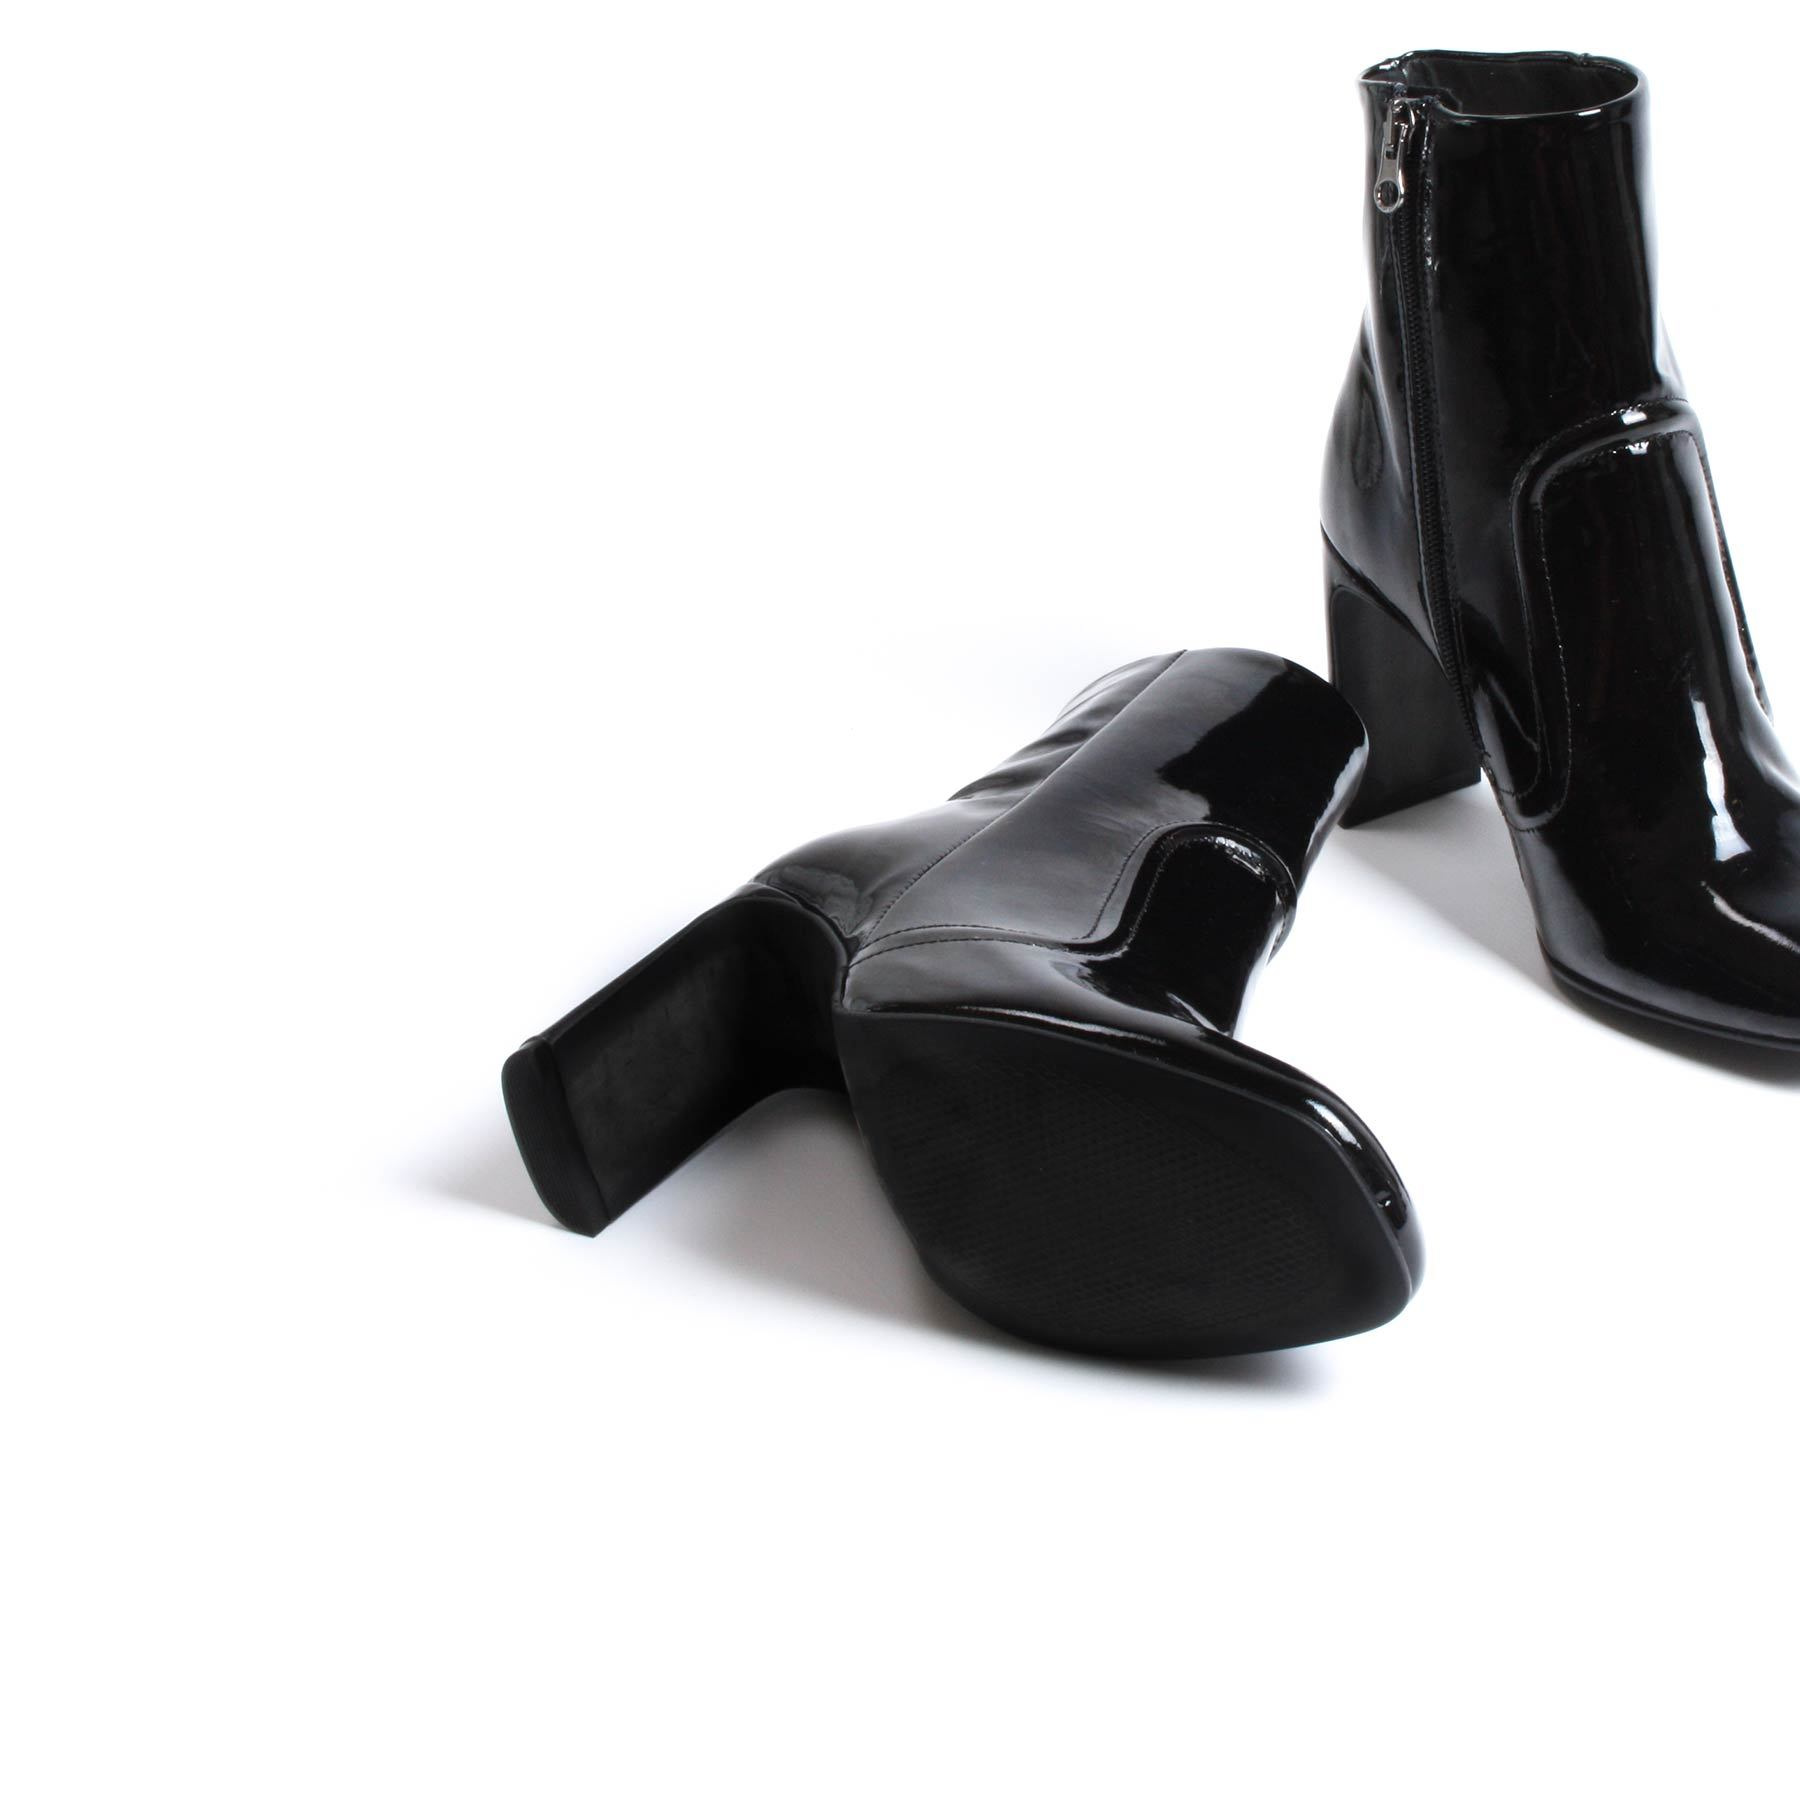 Cienega Black Patent Leather